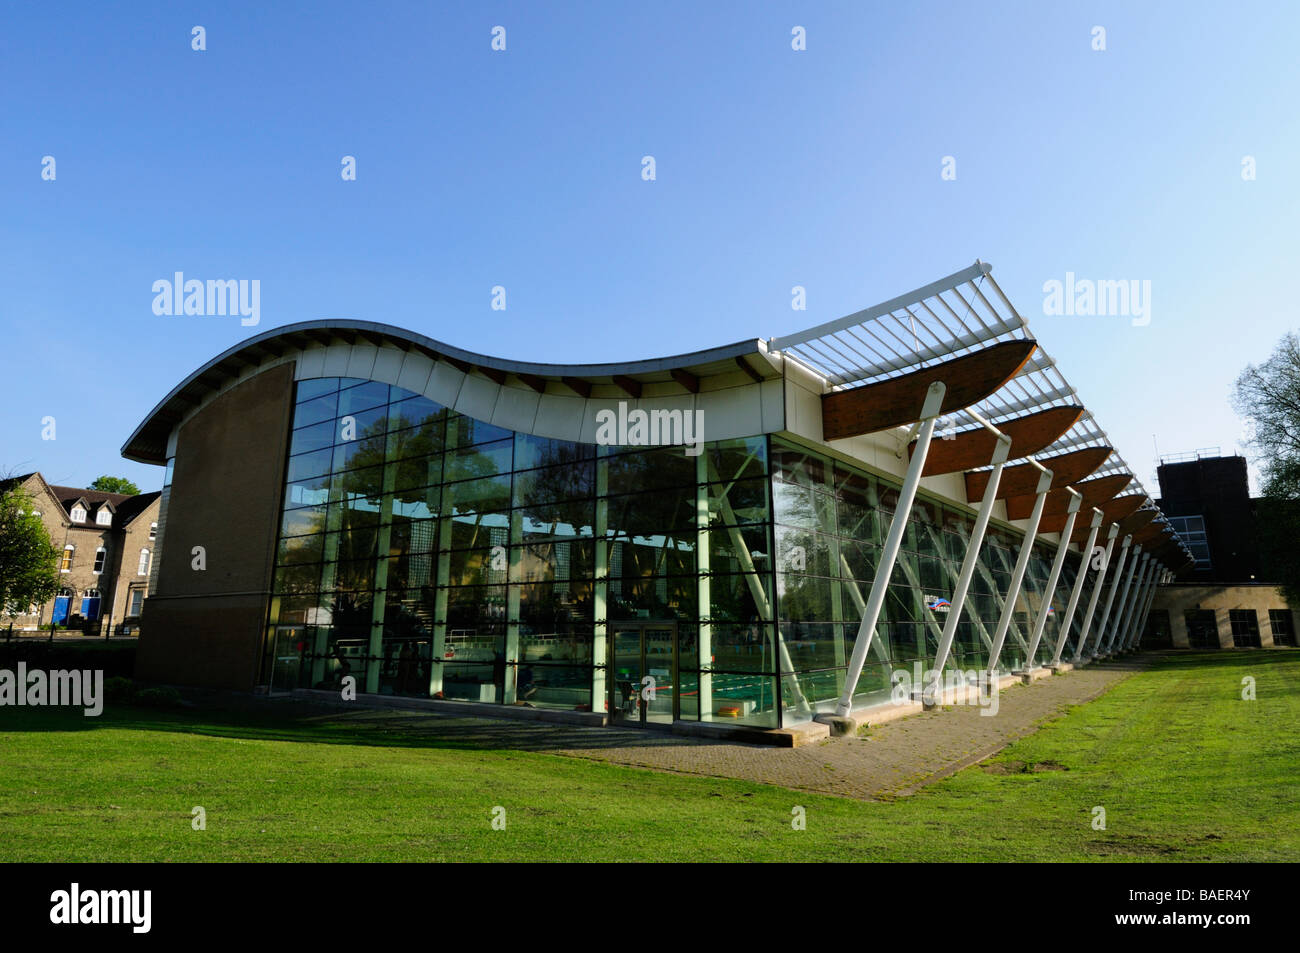 Parkside Pools Swimming Pool Cambridge England Uk Stock Photo Royalty Free Image 23682427 Alamy